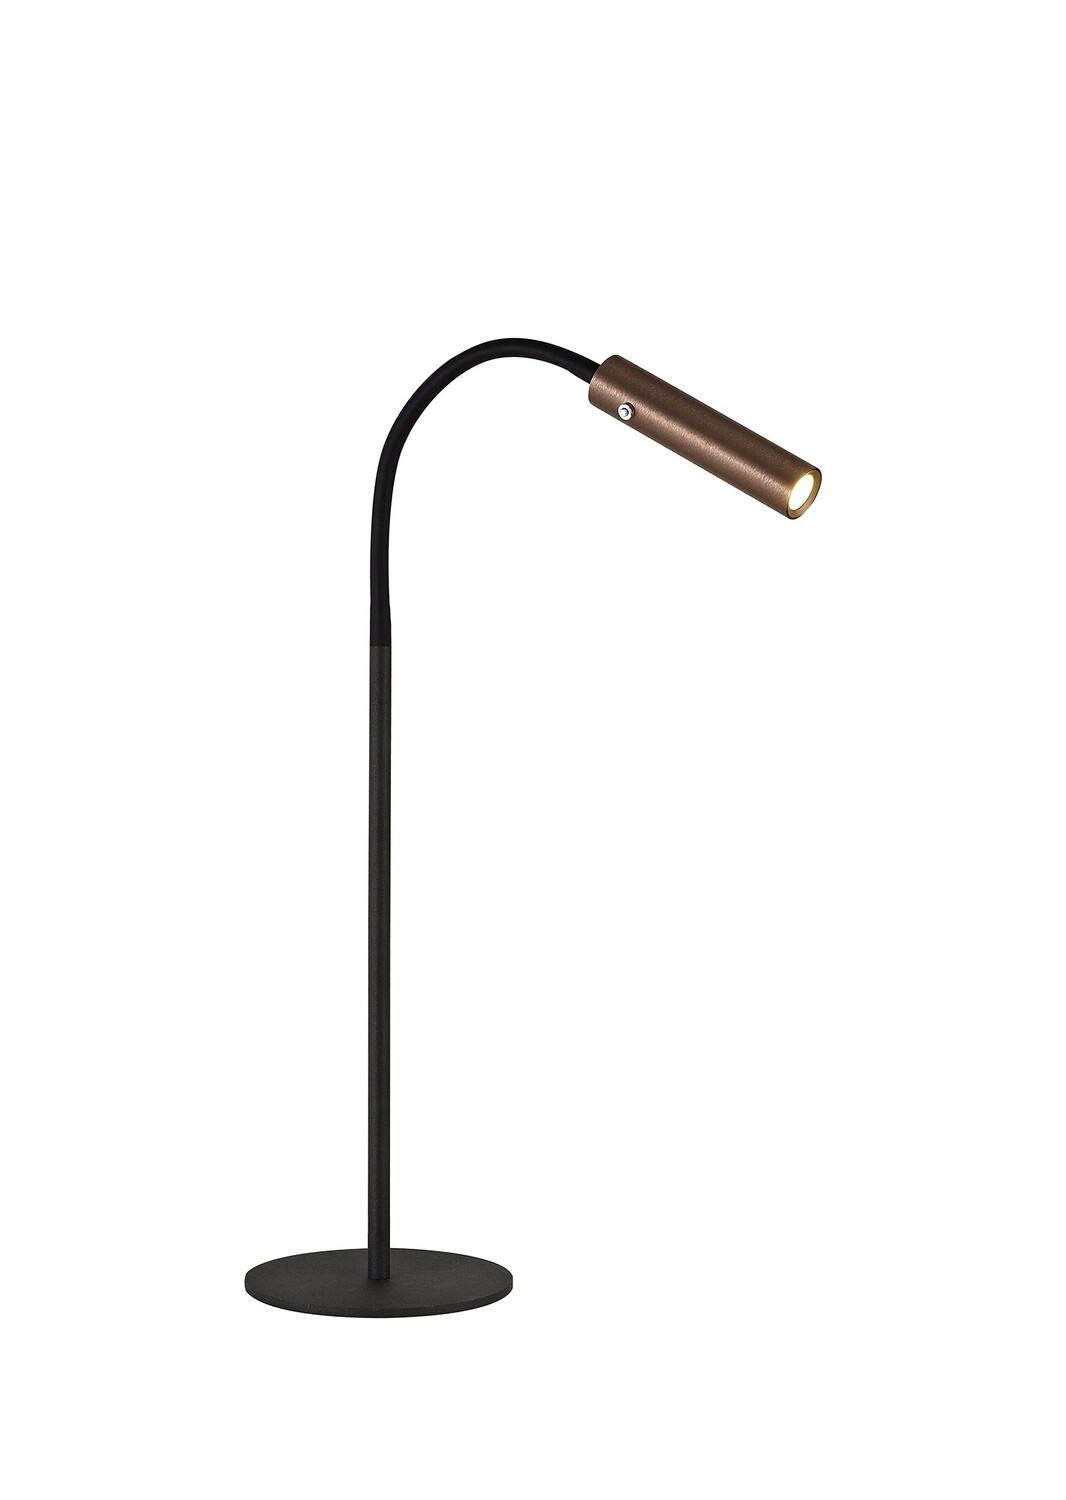 Stanie Table Lamp, 1 Light Adjustable Switched, 1 x 7W LED, 3000K, 436lm, Black/Satin Copper